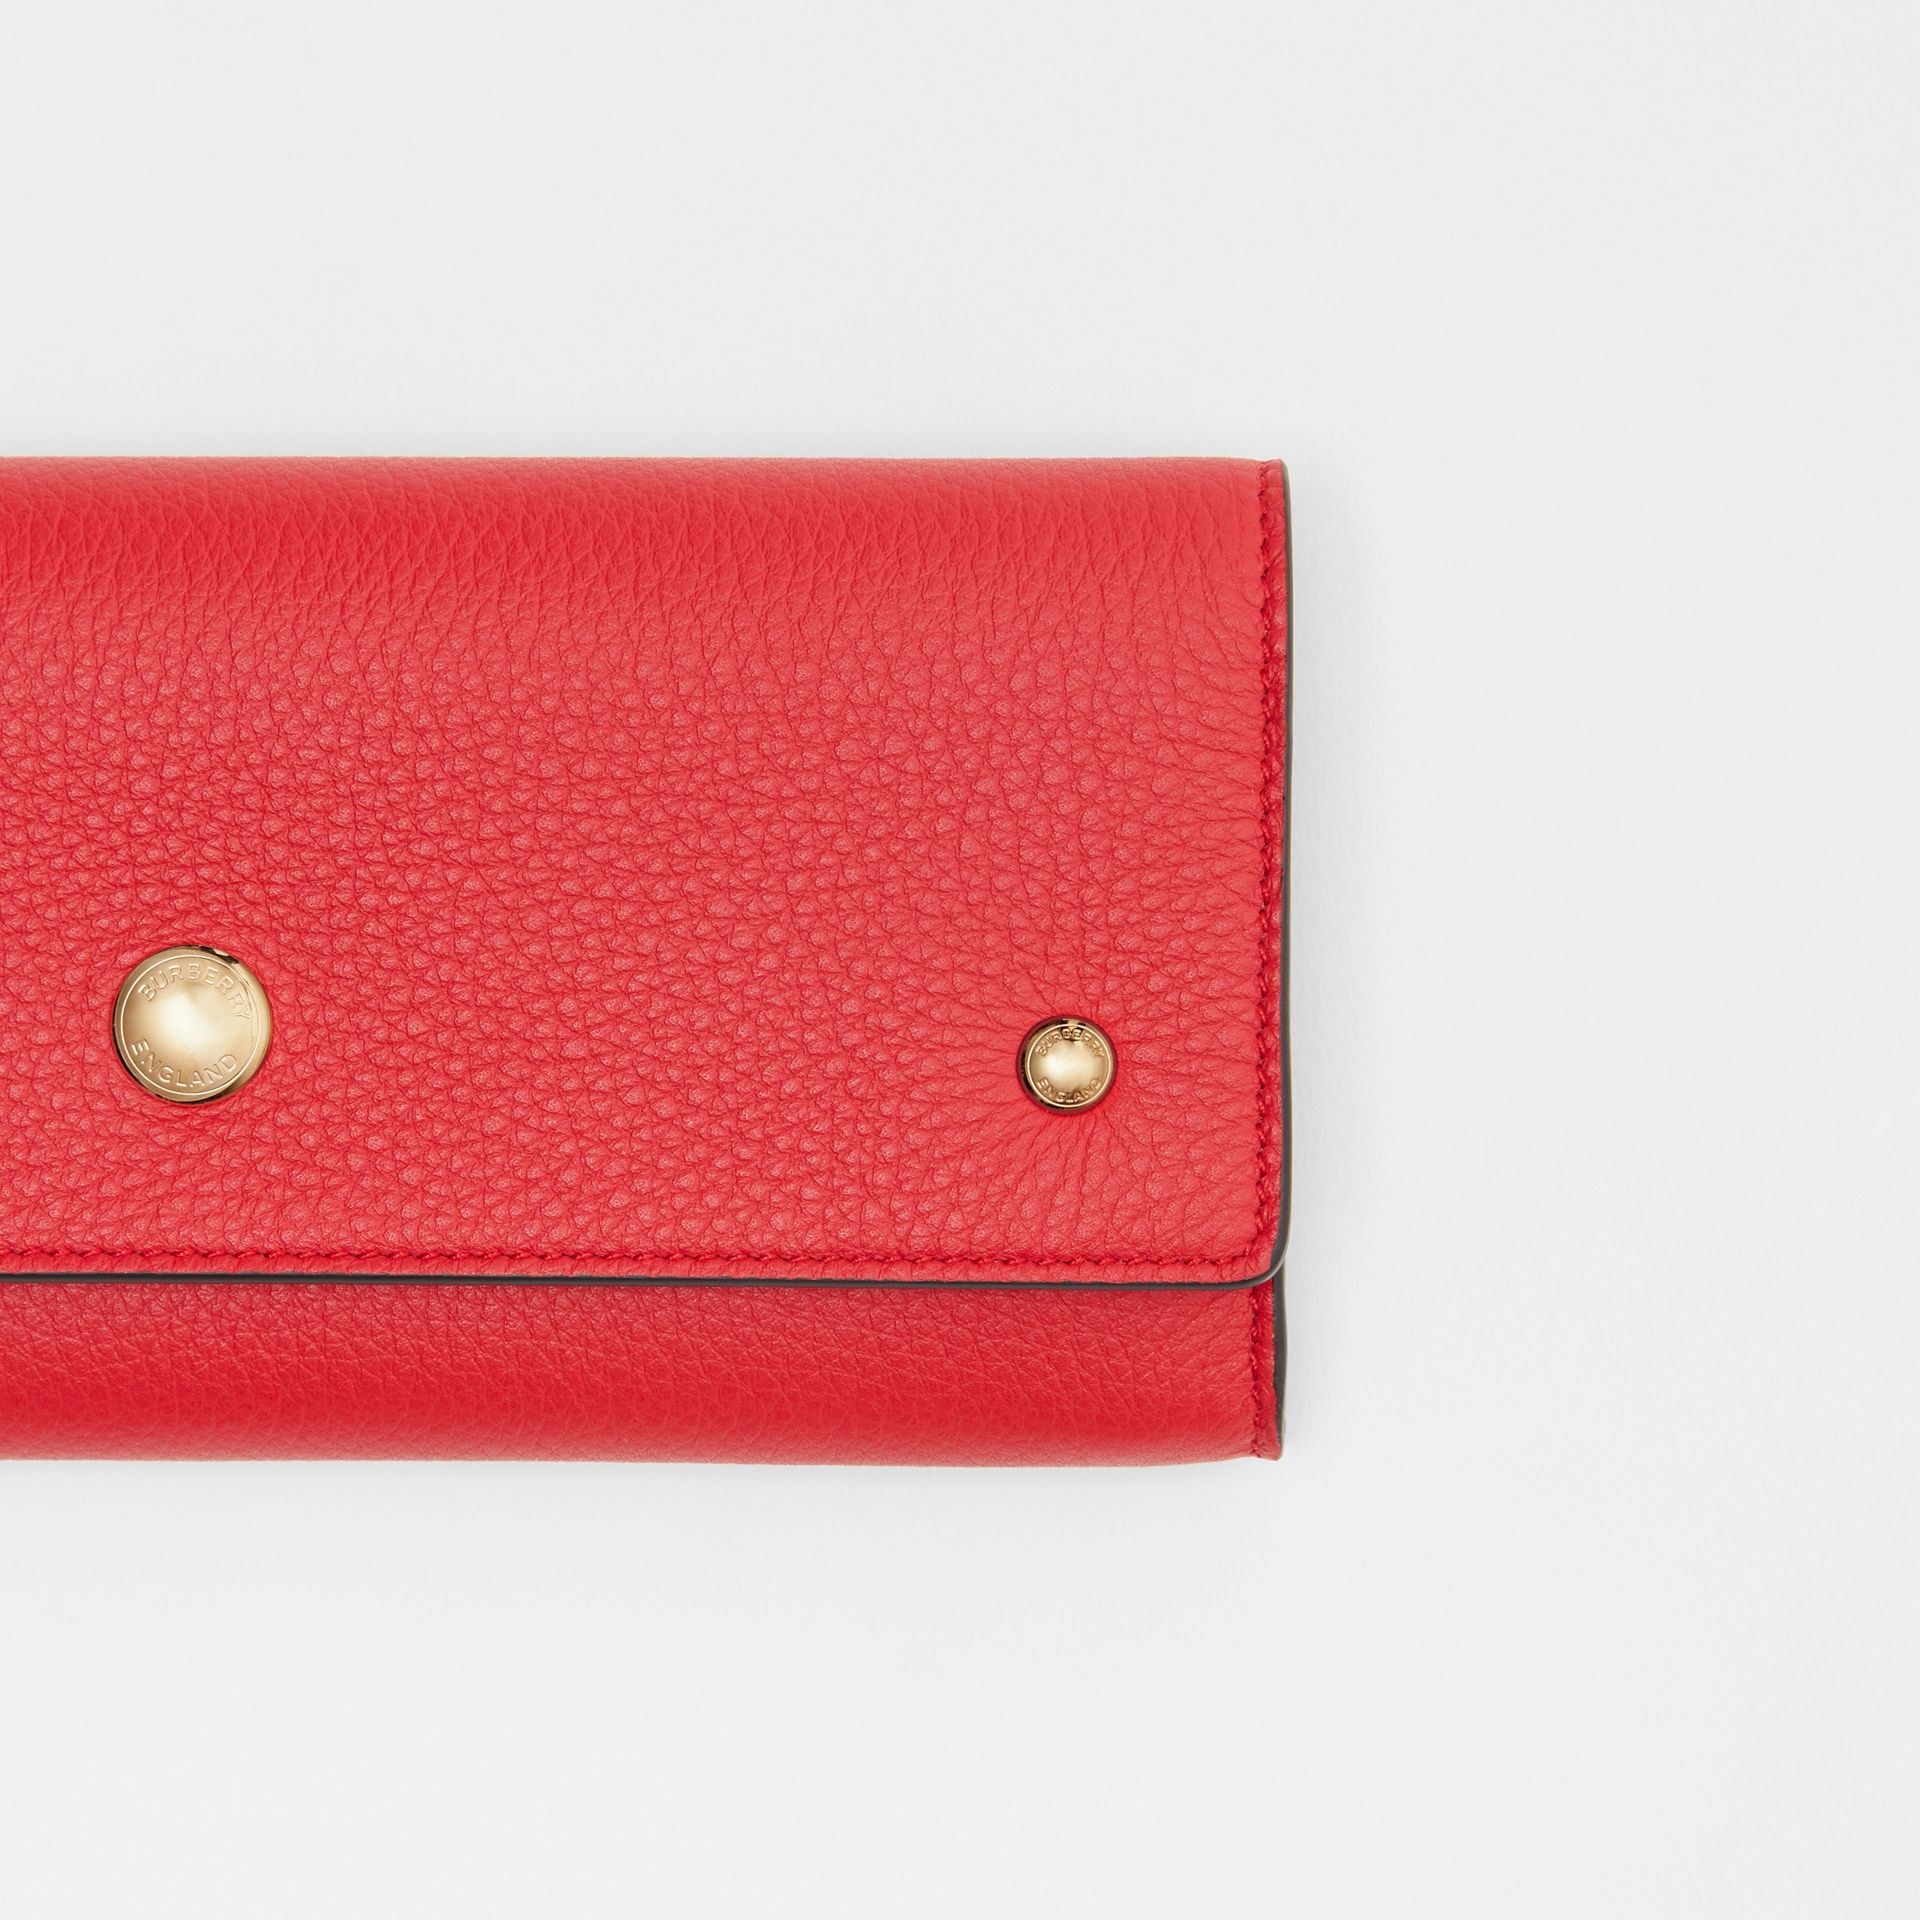 Grainy Leather Continental Wallet in Bright Military Red - Women | Burberry - gallery image 1